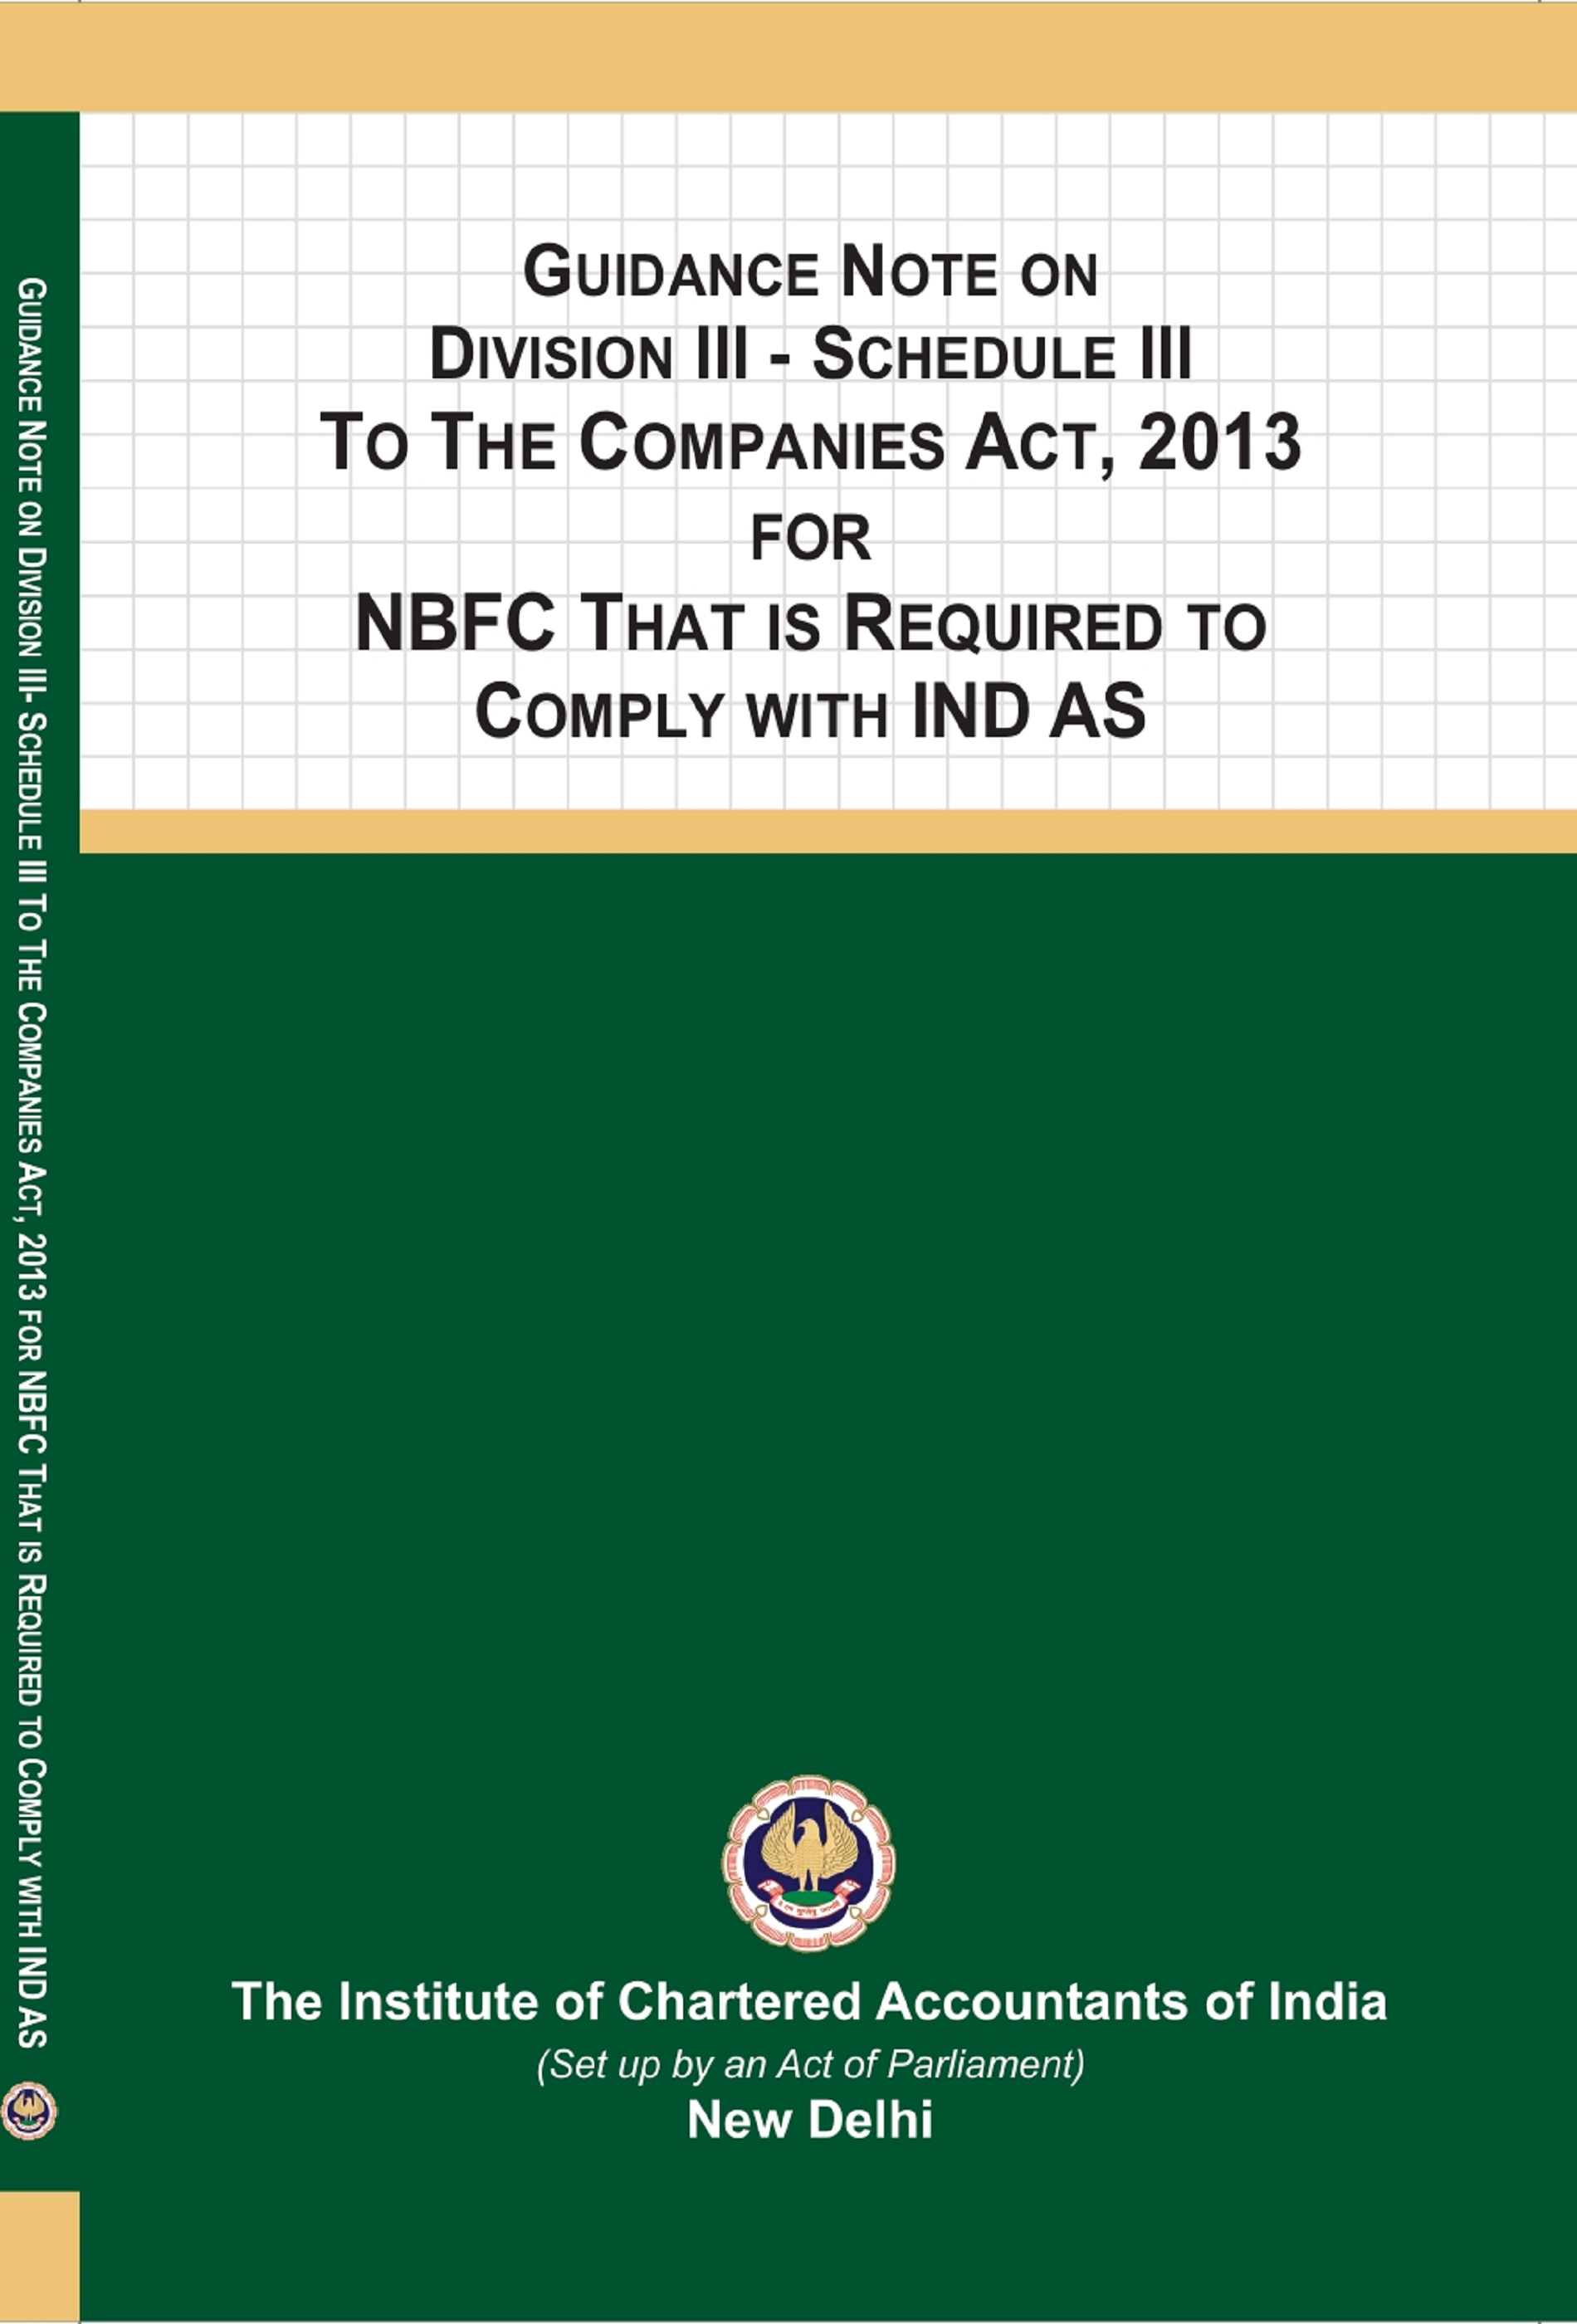 Guidance Note On Division III - Schedule III To The Companies Act, 2013 For NBFC That Is Required To Comply With Ind AS (October, 2019)